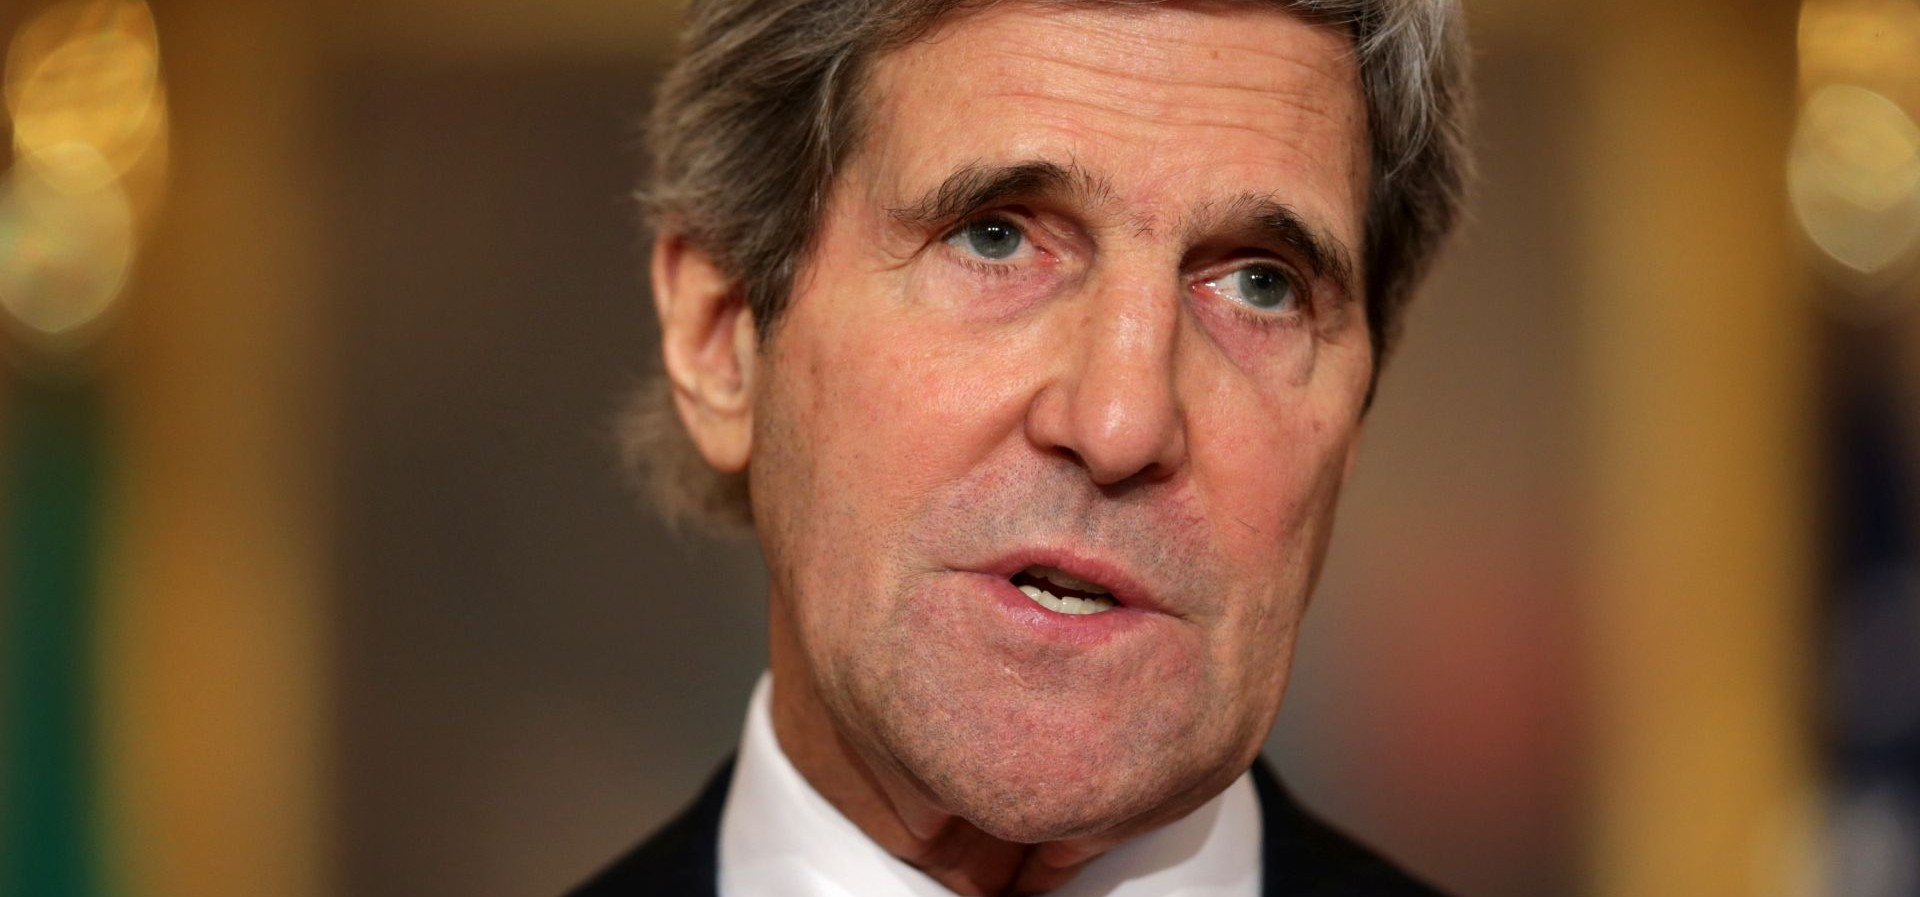 VIDEO: John Kerry prošetao ulicama Moskve